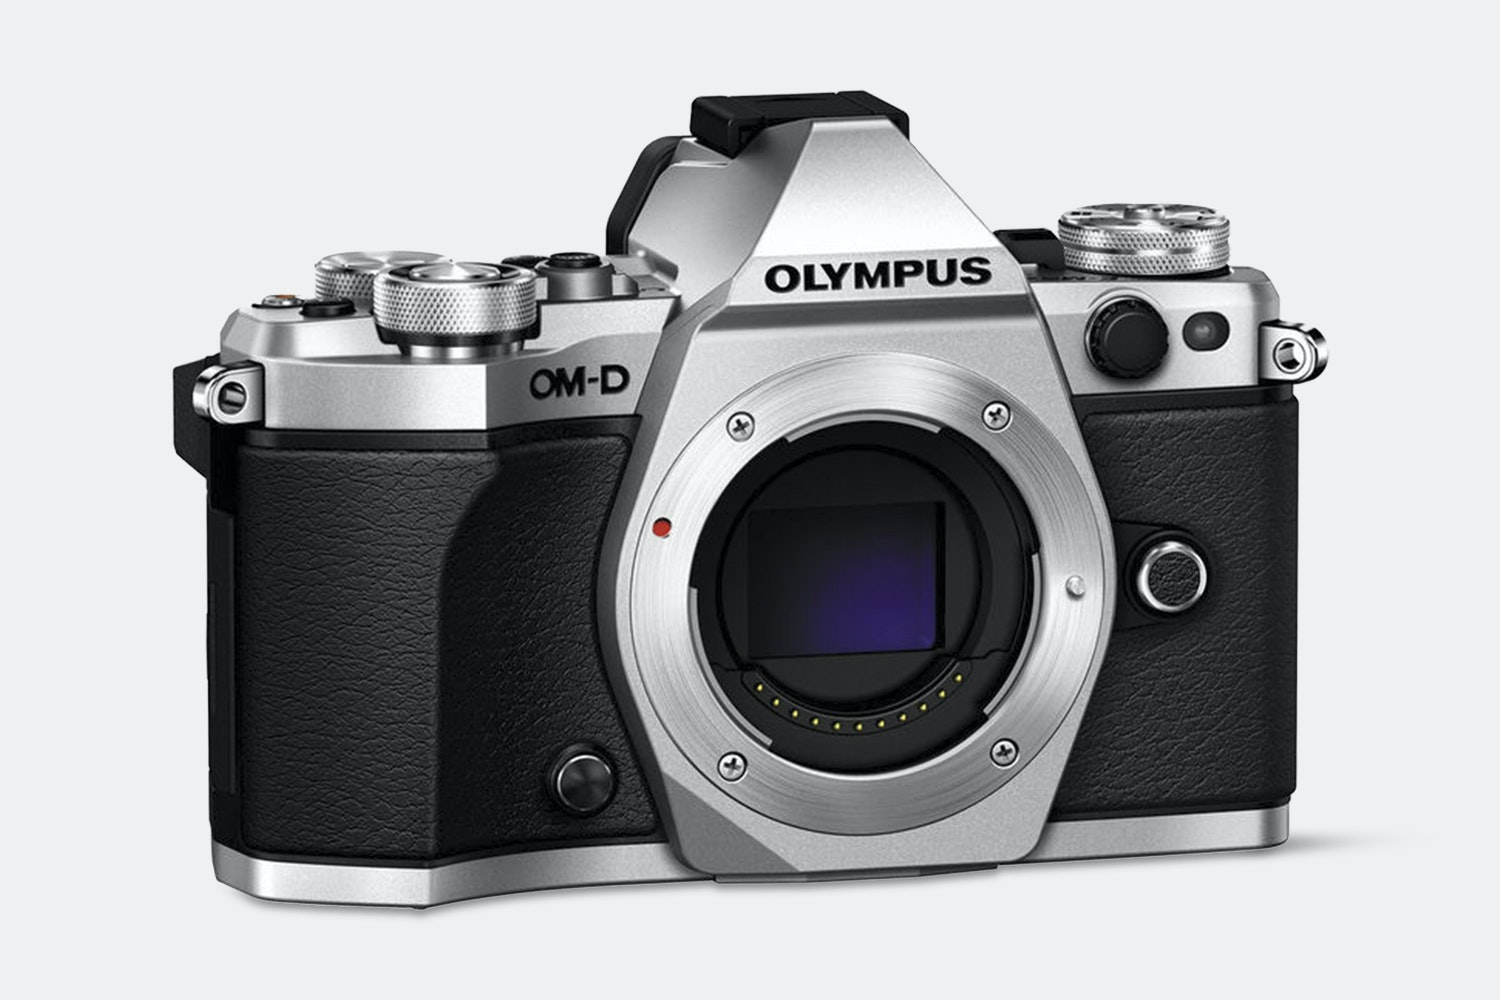 Olympus OM-D E-M5 Mark II with 12-40mm f/2.8 Lens